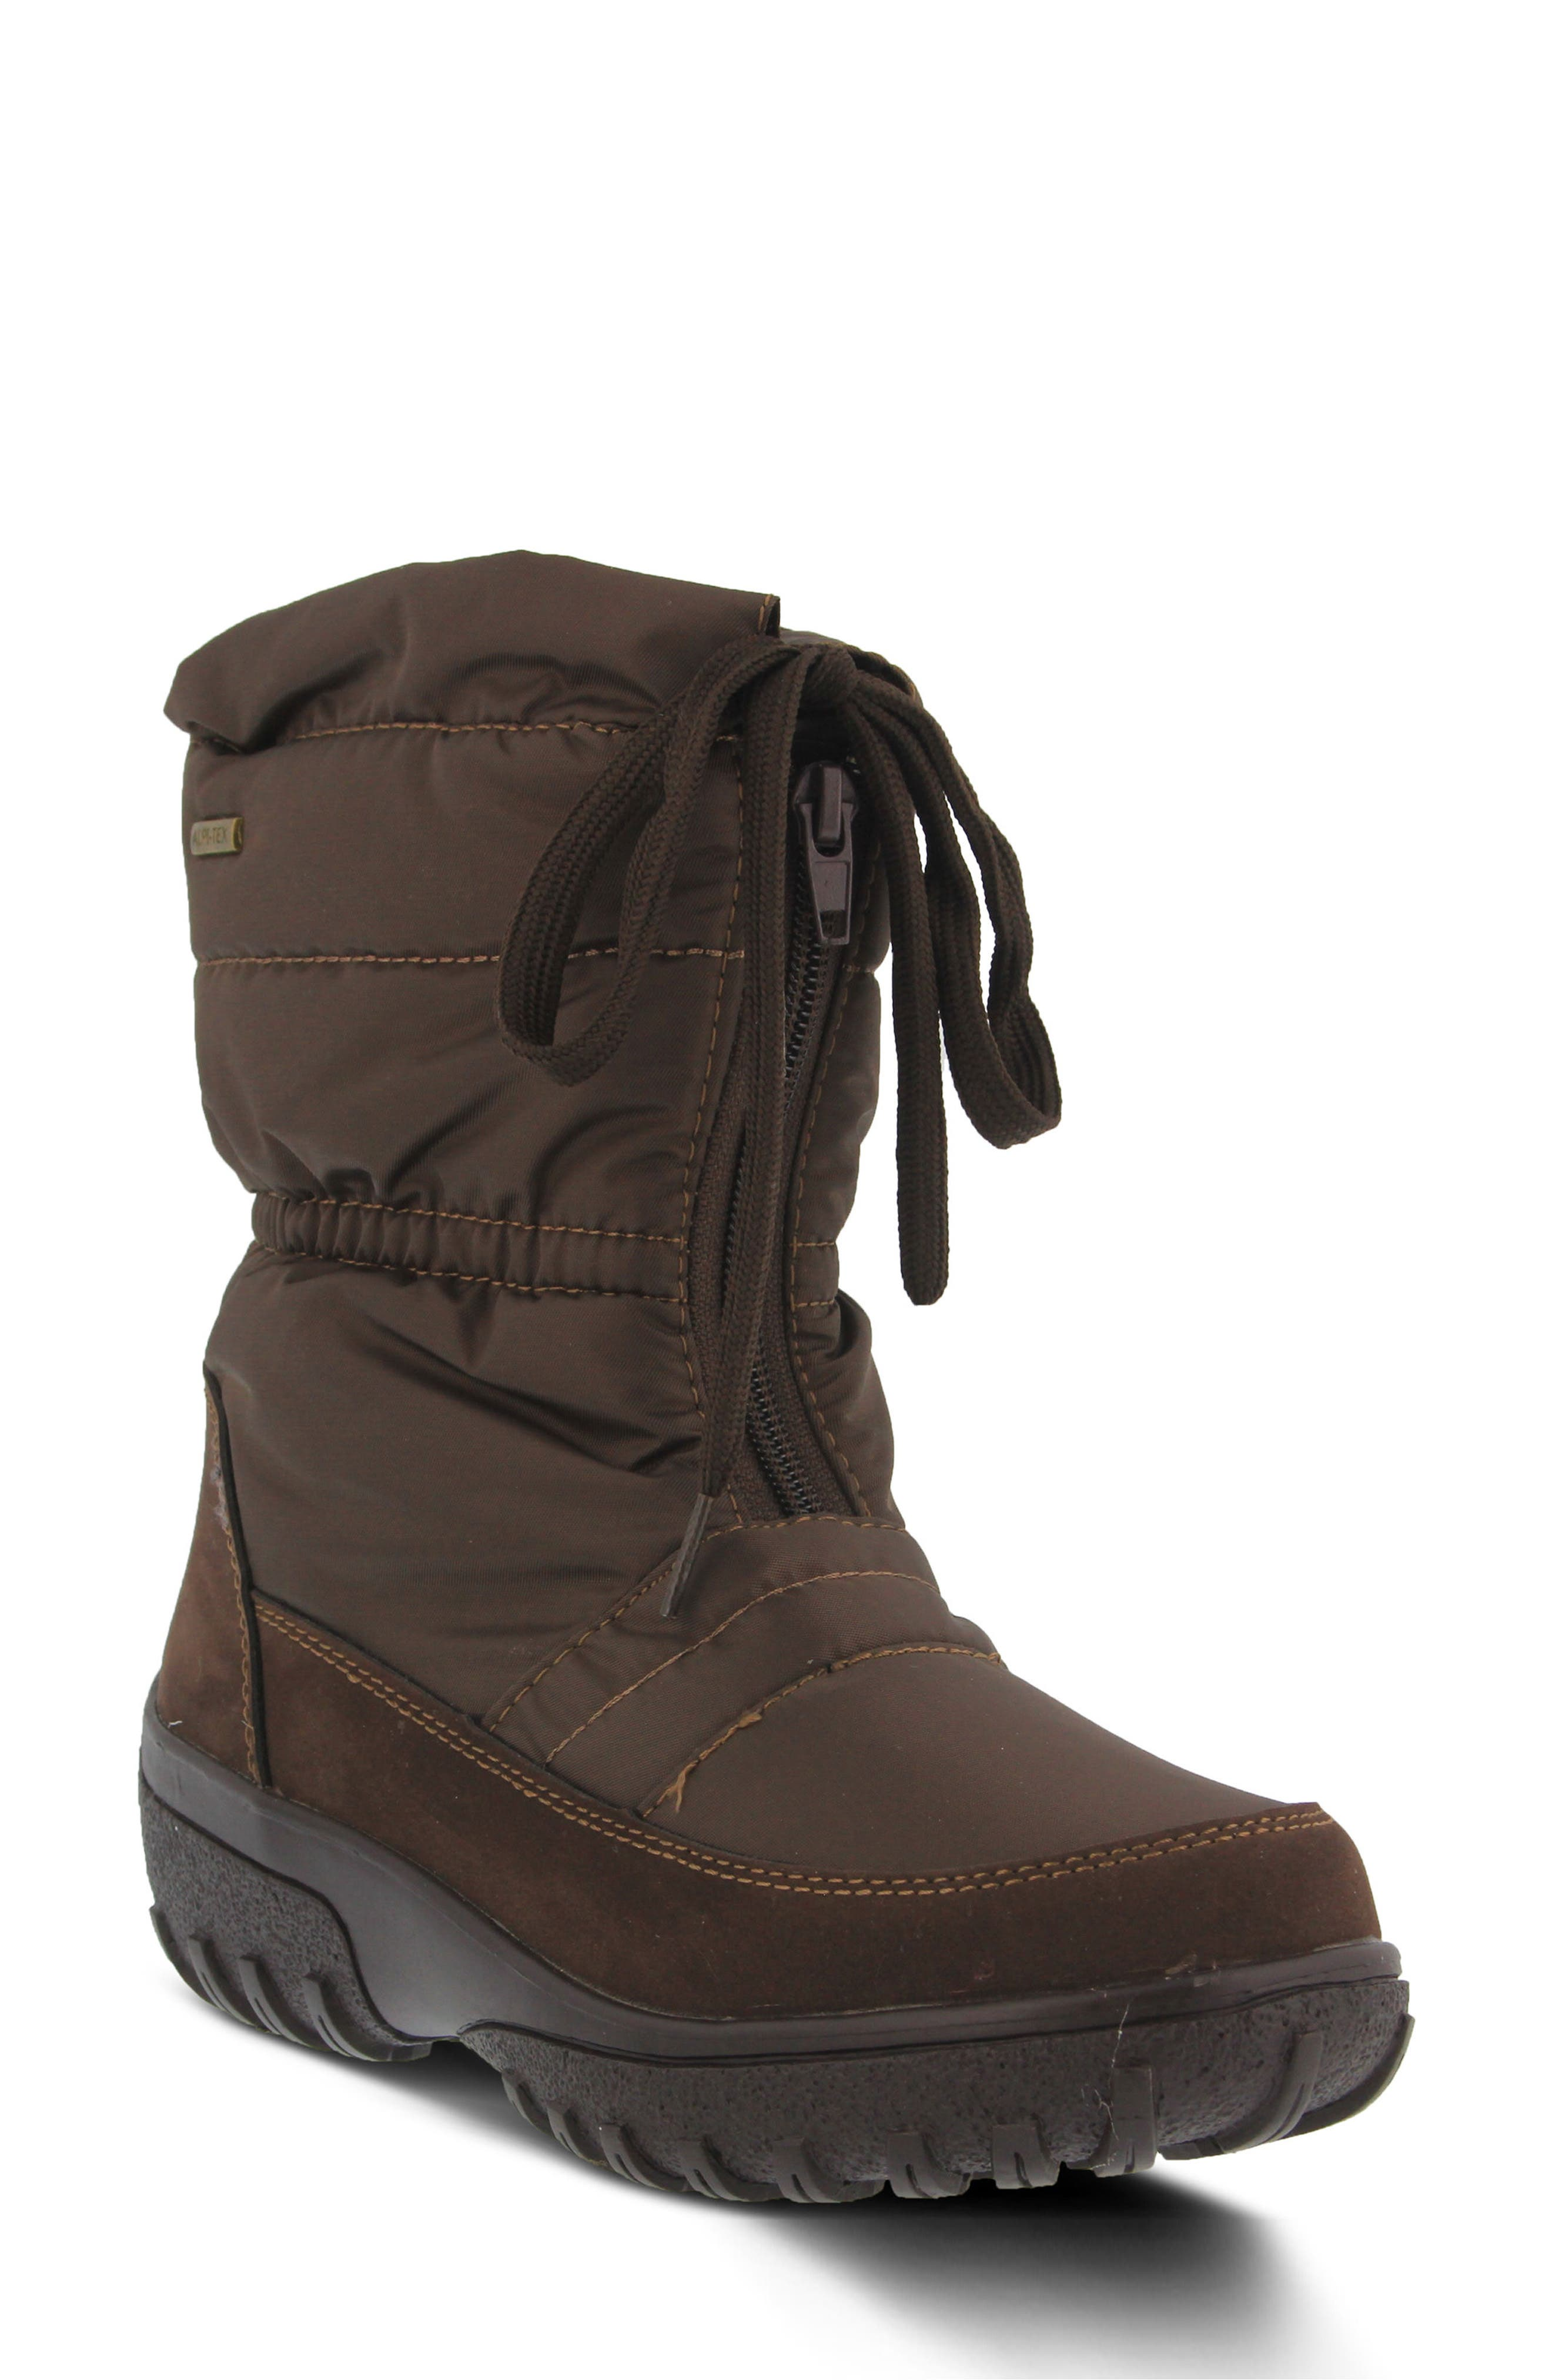 Alternate Image 1 Selected - Spring Step Lucerne Waterproof Drawstring Boot (Women)